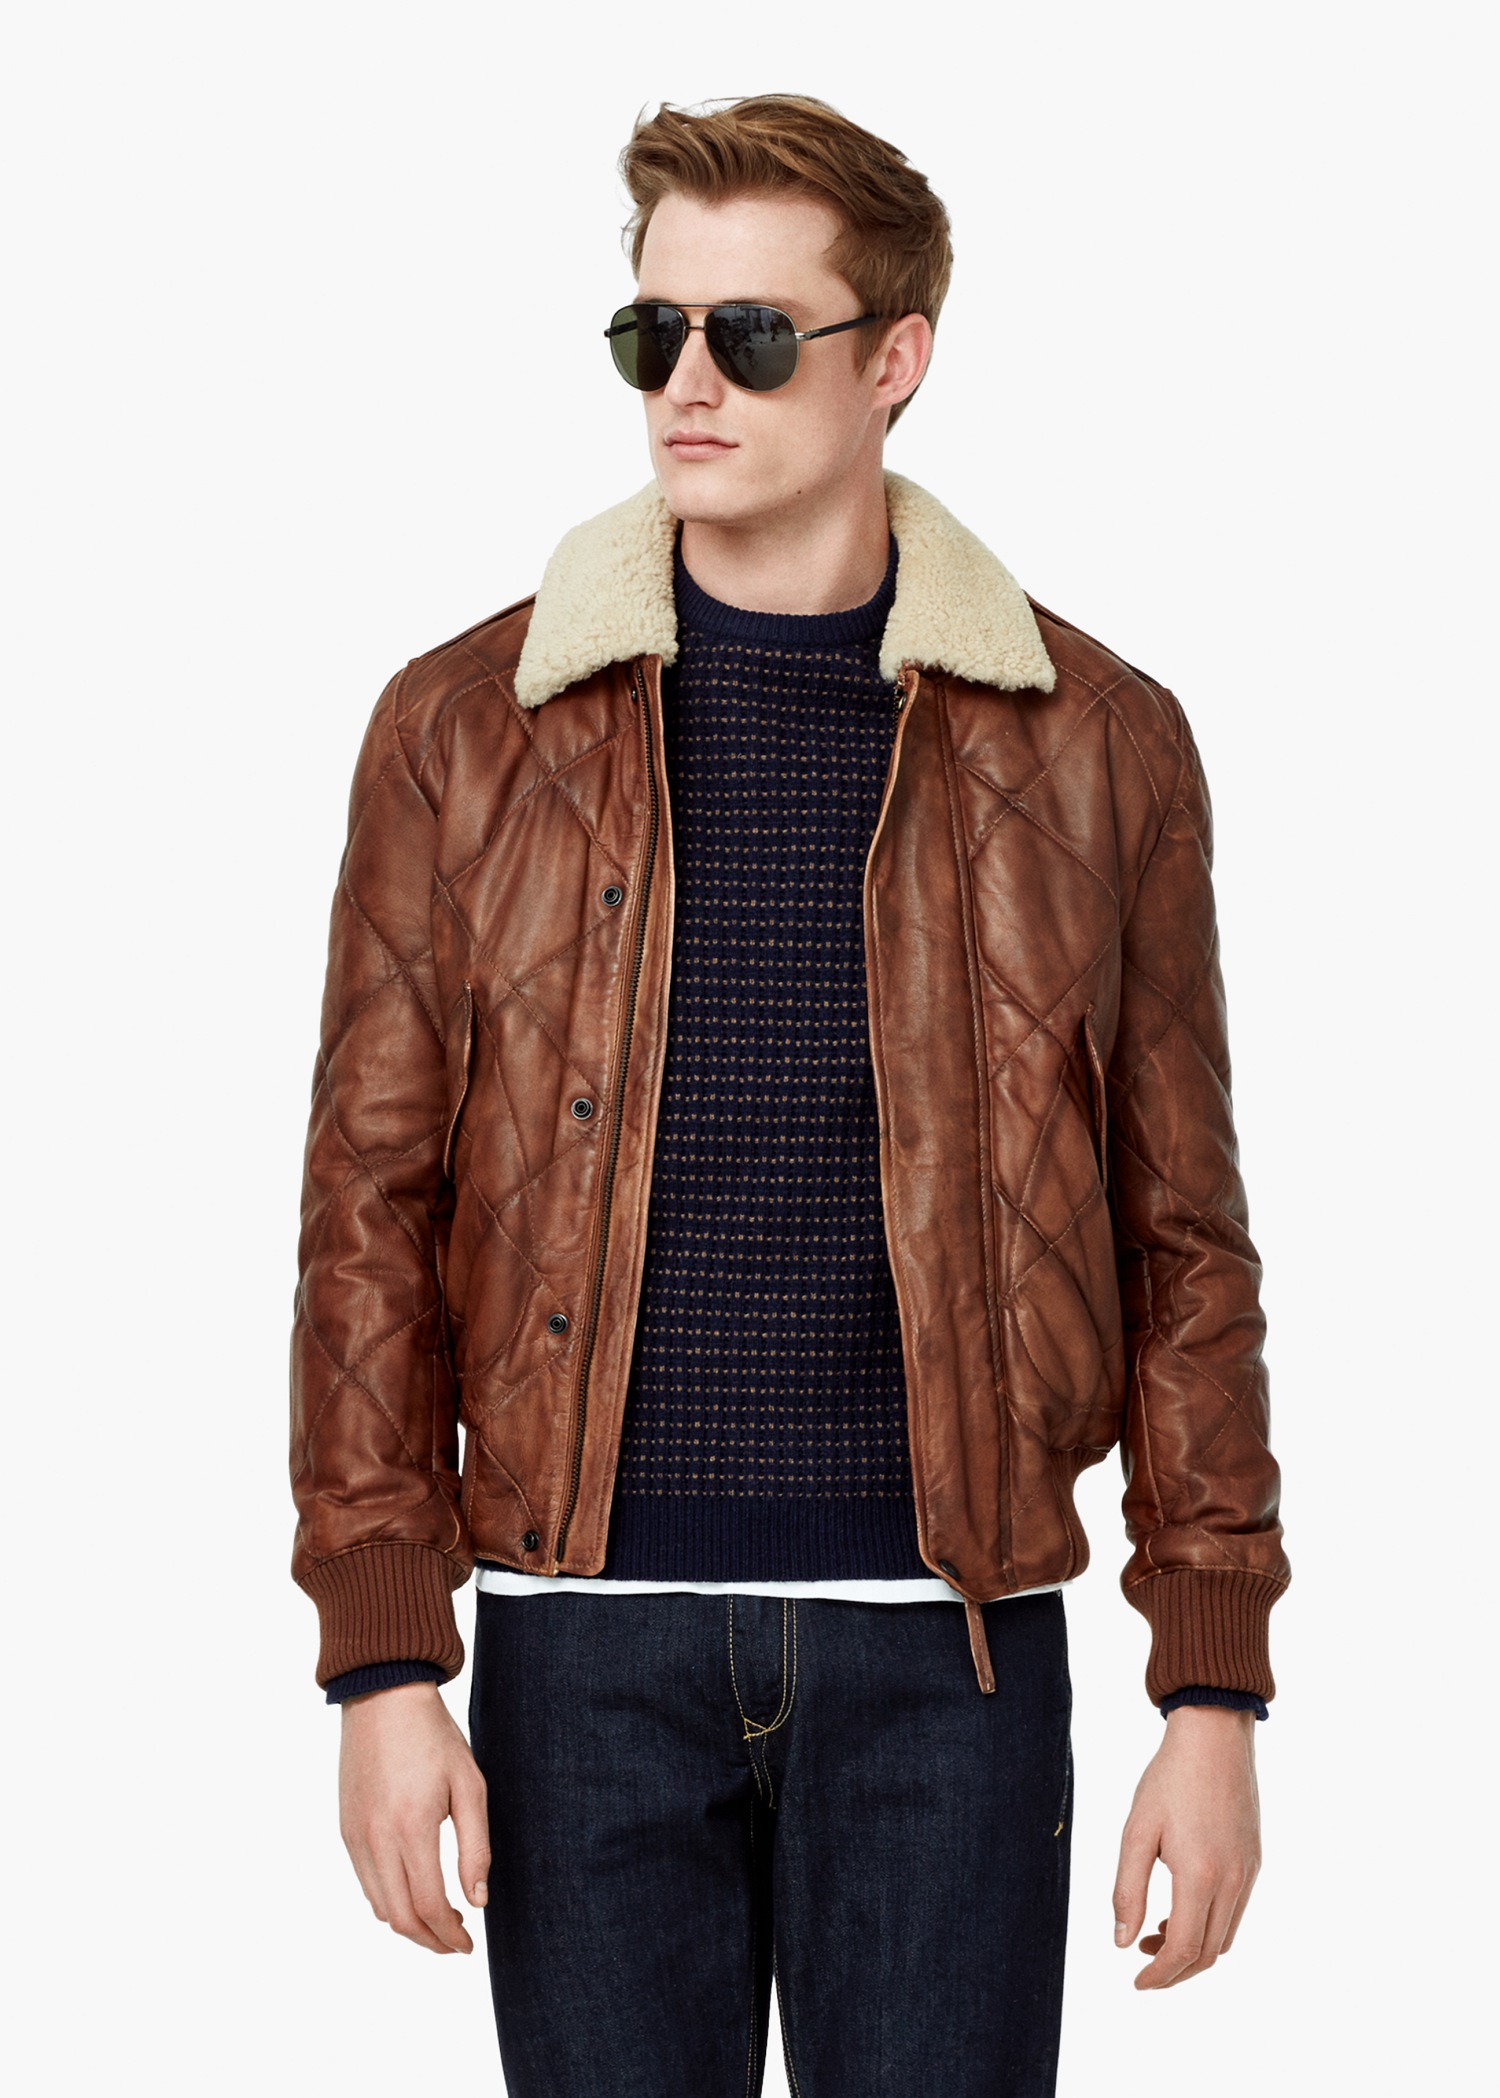 Leather jackets aviator